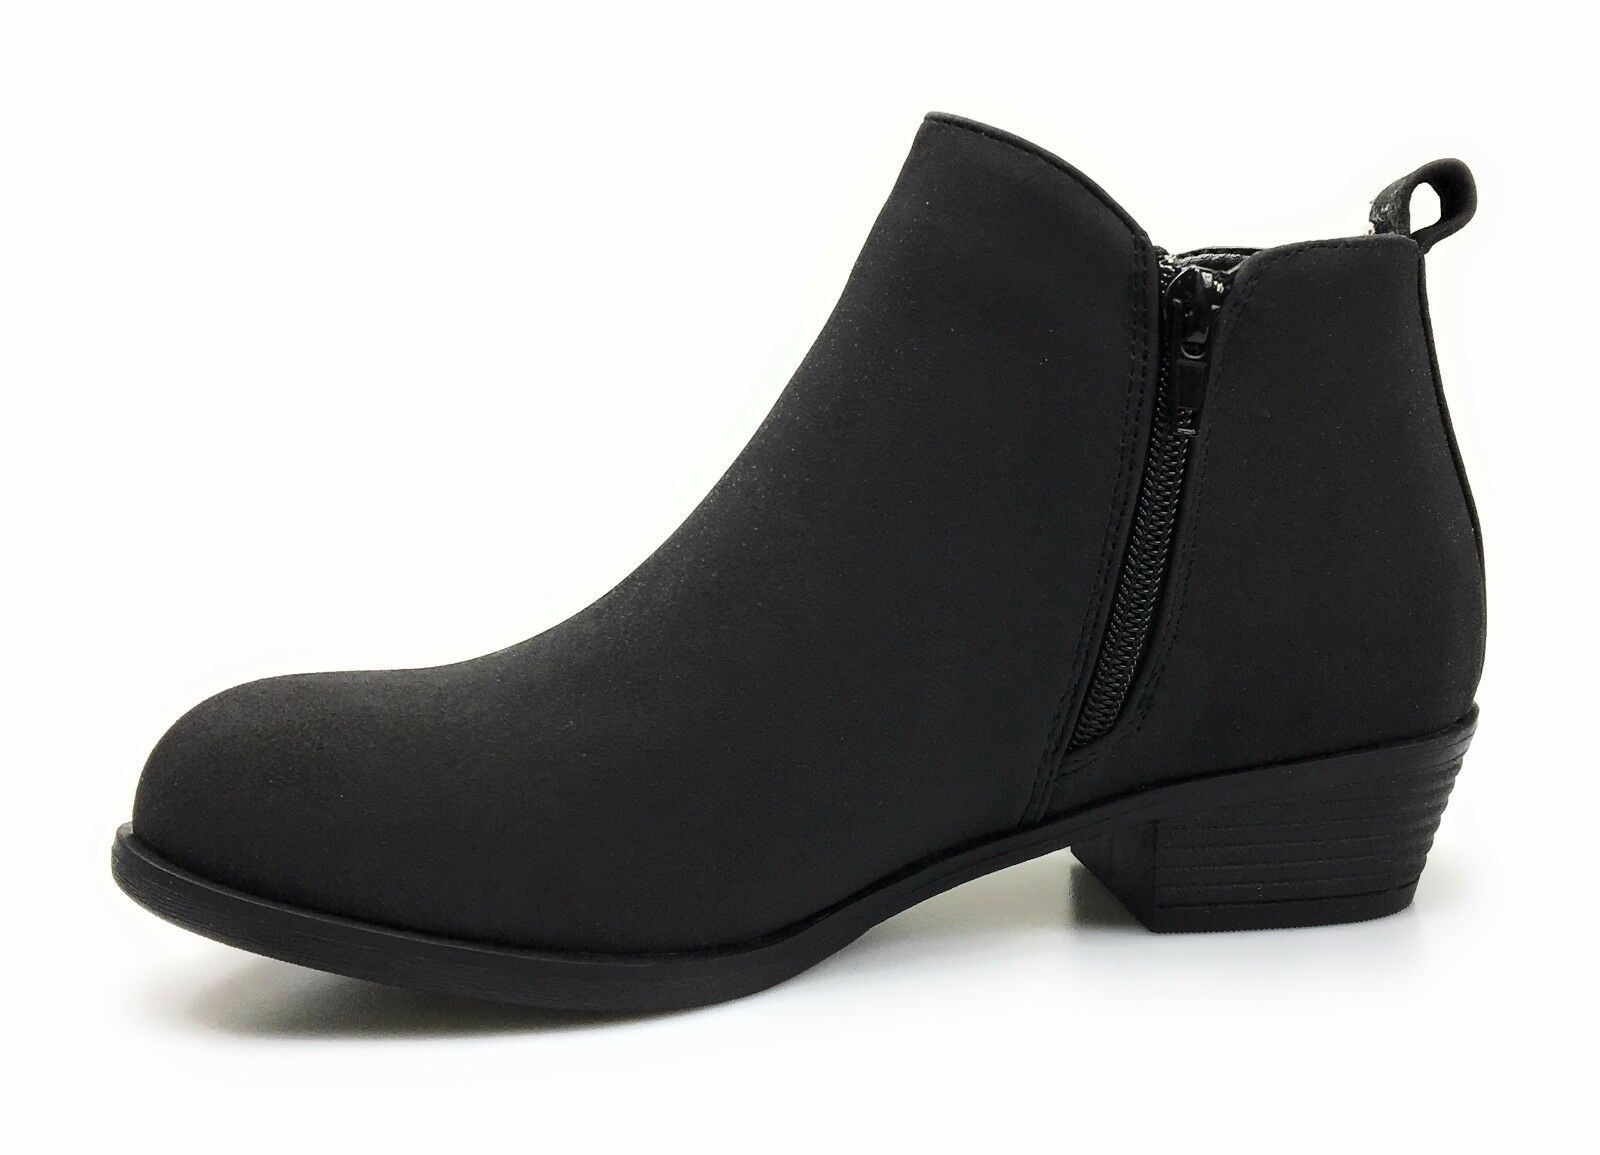 Womens Ankle Booties Vegan Faux Suede Dual Zipper Pierre Dumas Zoey-1